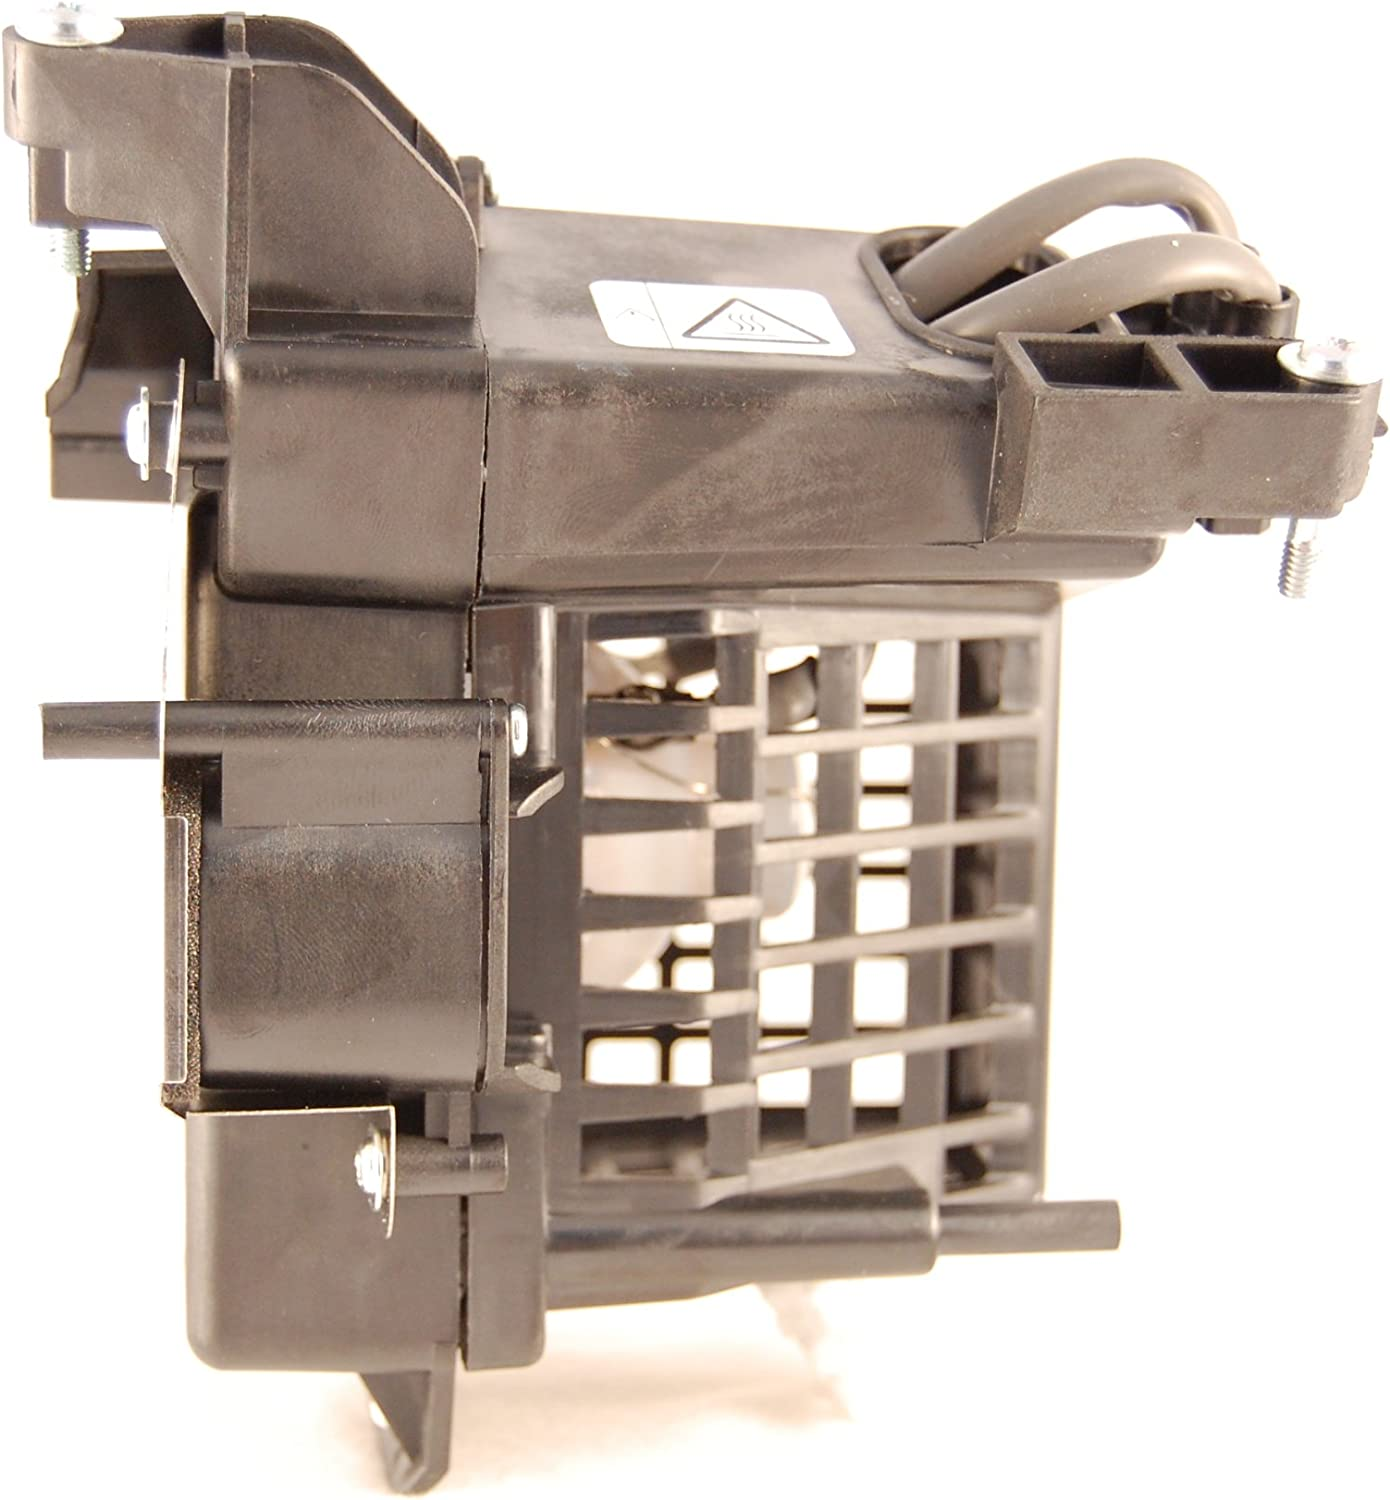 Sony XL-5000 OEM Projection TV LAMP Equivalent with HOUSING